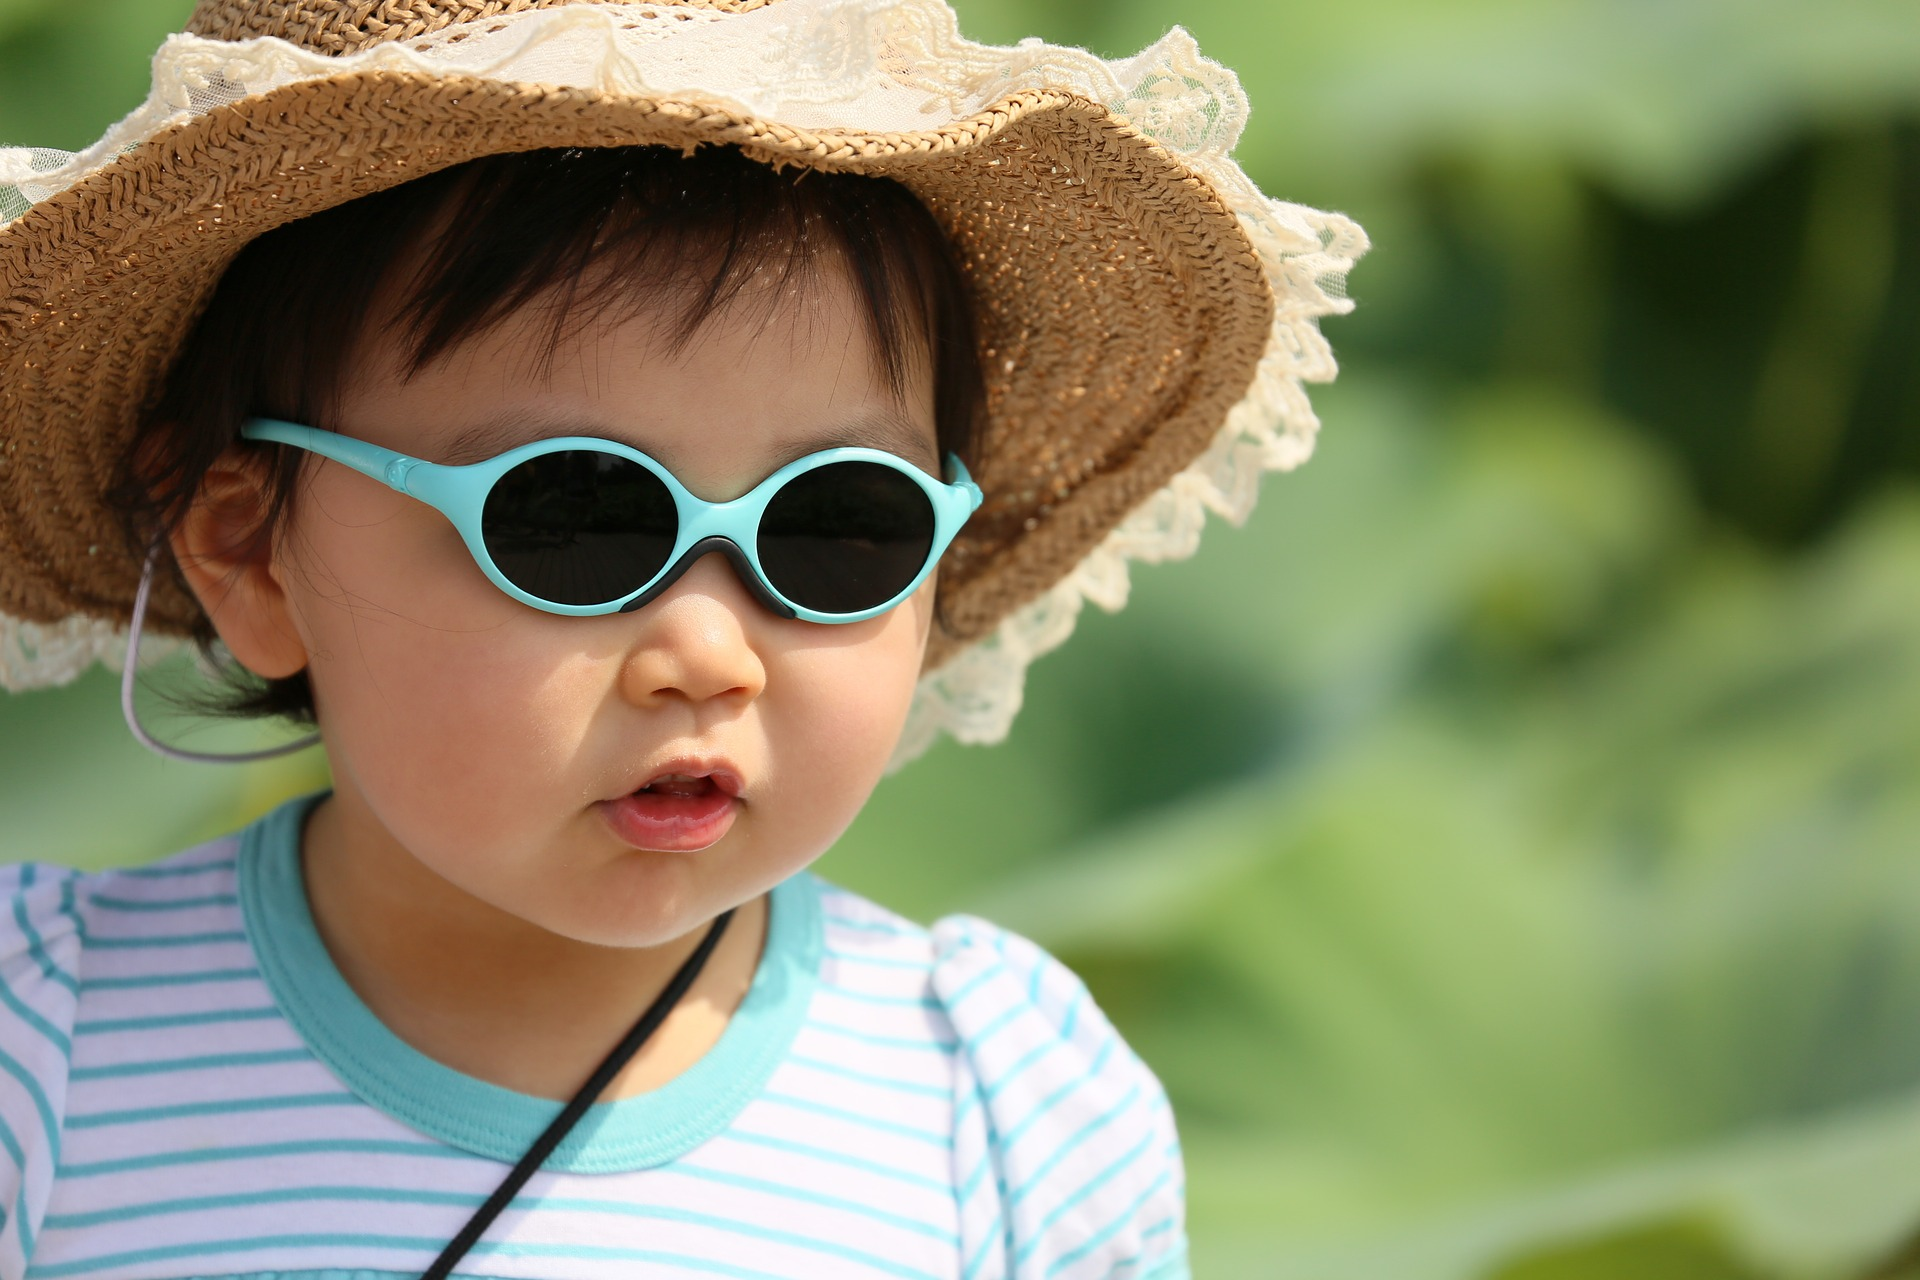 young child in protective sunglasses with wide brimmed hat